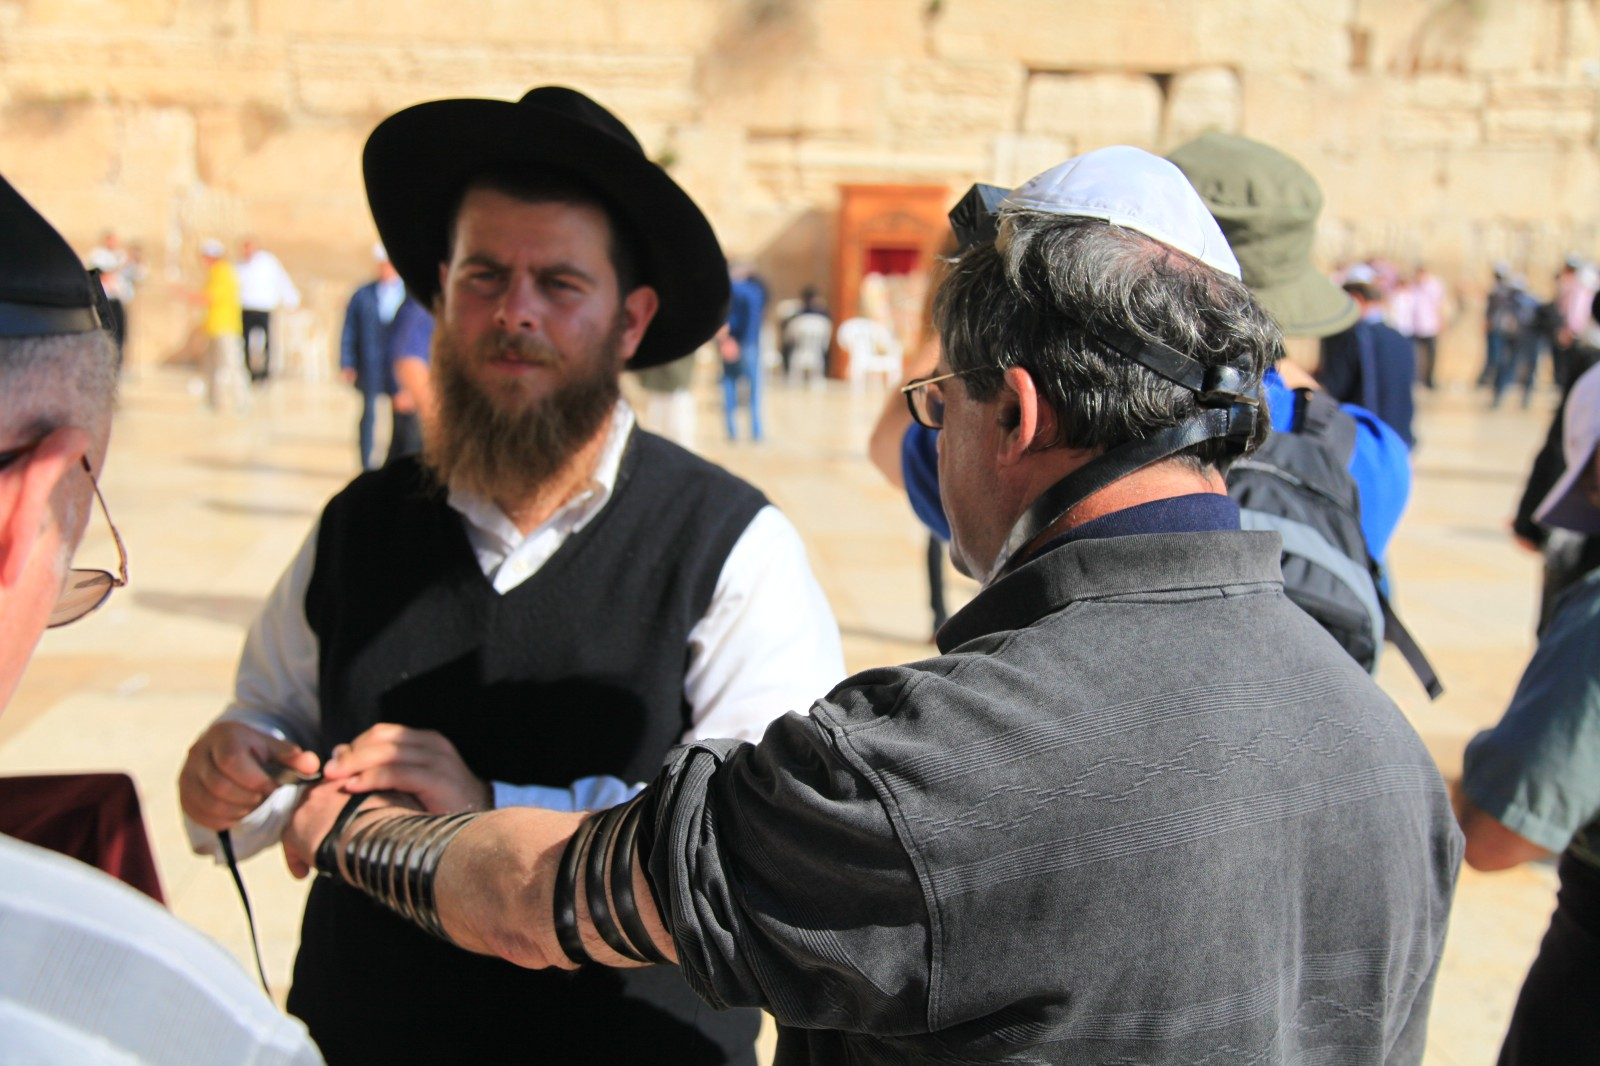 The guy failed to explain me what is the meaning of it, even though he spoke fluent Russian - it just something that foreign Jews like to wear for prayer. And they pay for wearing this.